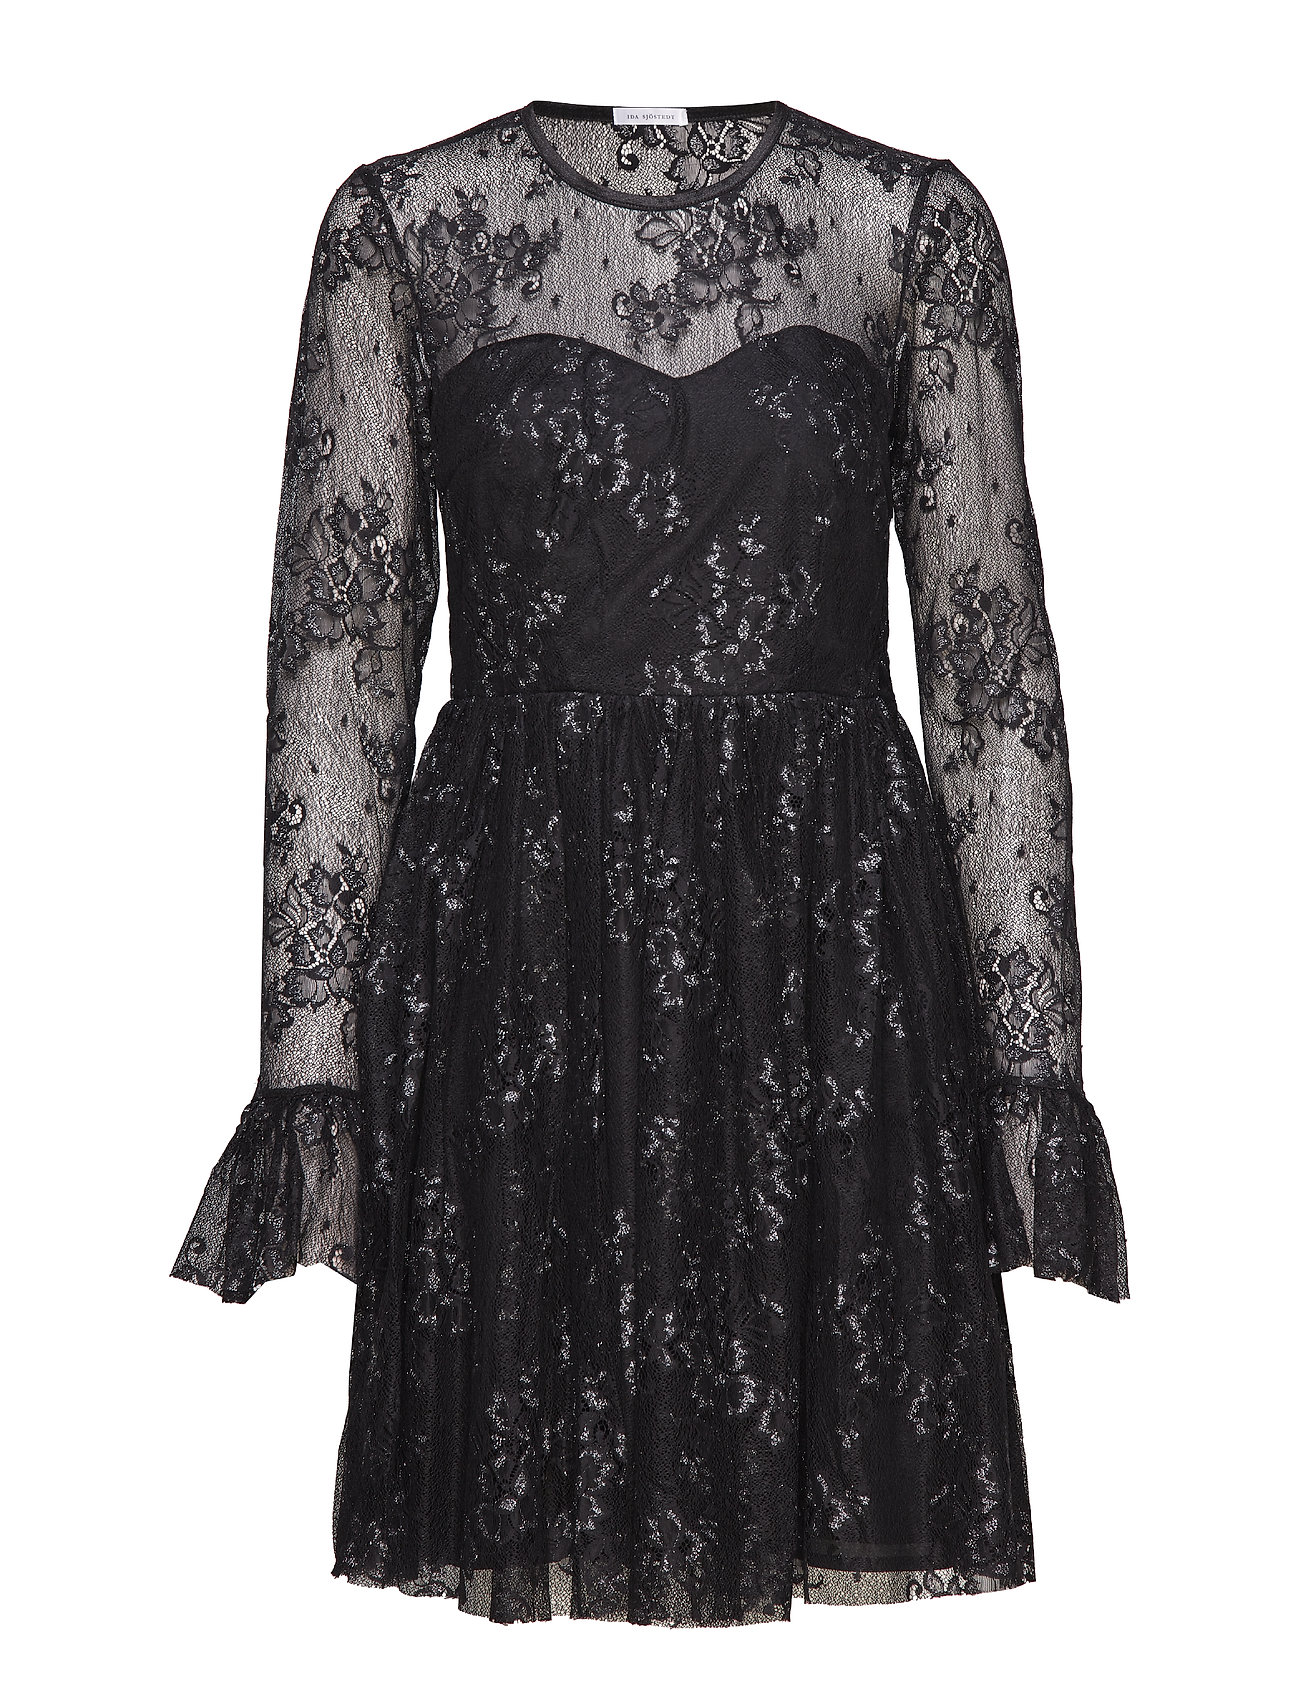 Ida Sjöstedt Tilly Dress - BLACK/SILVER